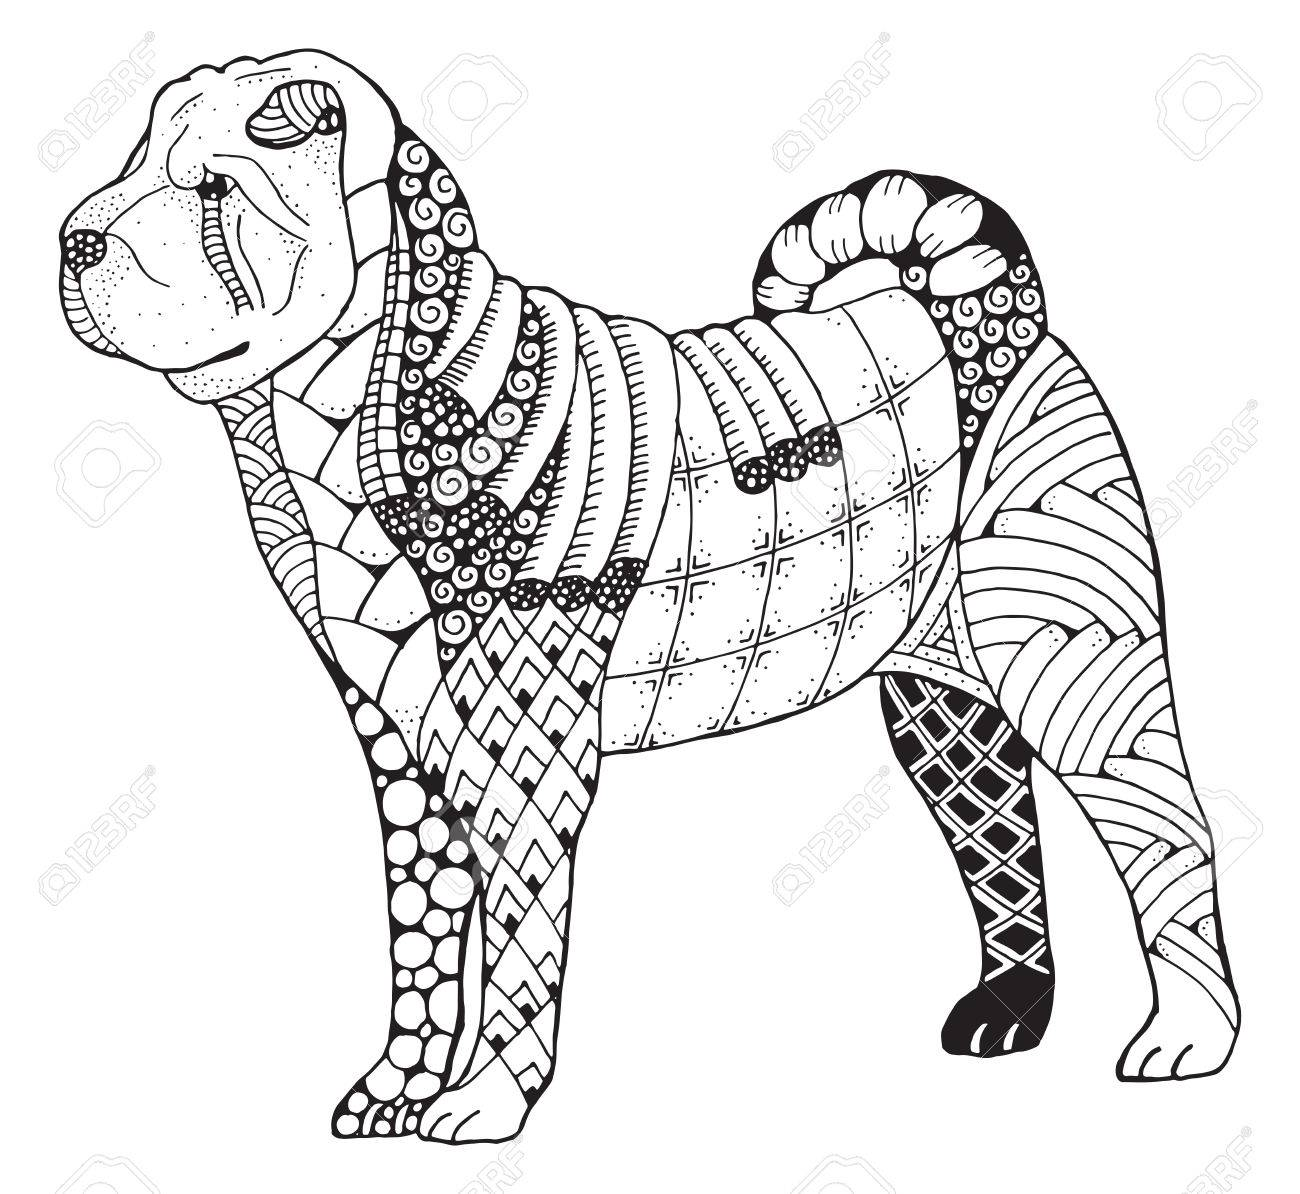 Shar pei dog zentangle doodle stylized, vector, illustration,